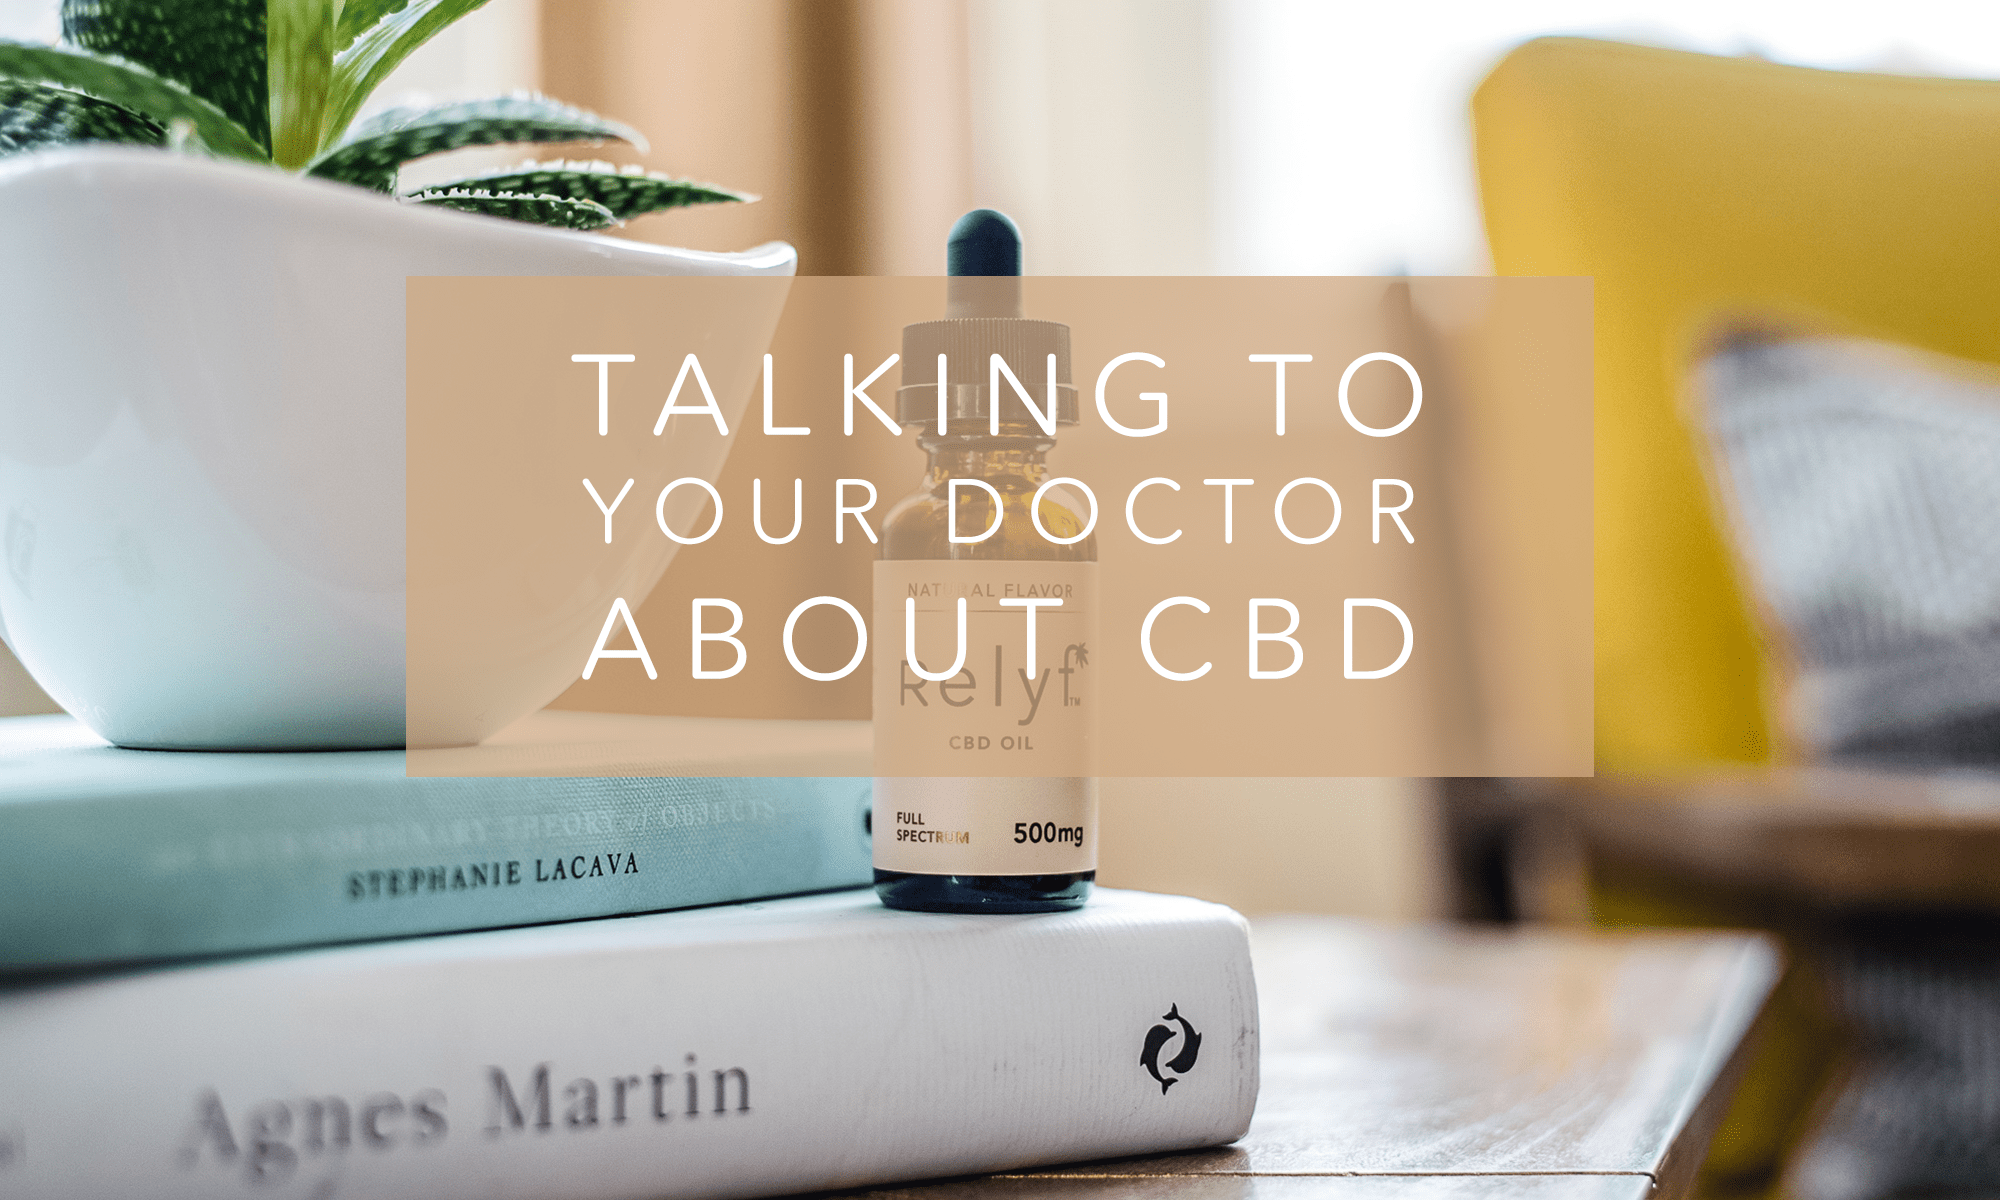 How to Talk to Your Doctor About CBD